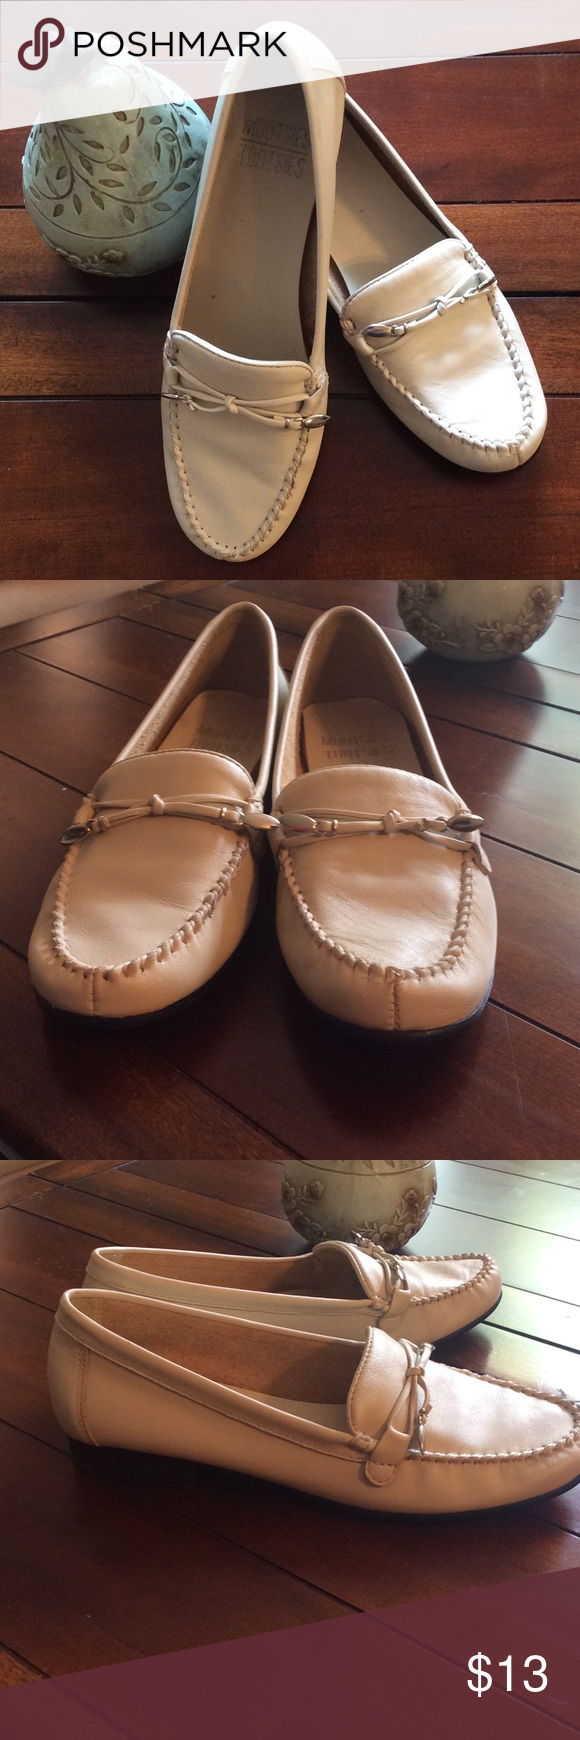 Cute bone colored flats Soft leather with cute silver detail. Worn once....too narrow for me. Excellent condition no flaws. Heel is less than half inch. Mootsies Tootsies Shoes Flats & Loafers